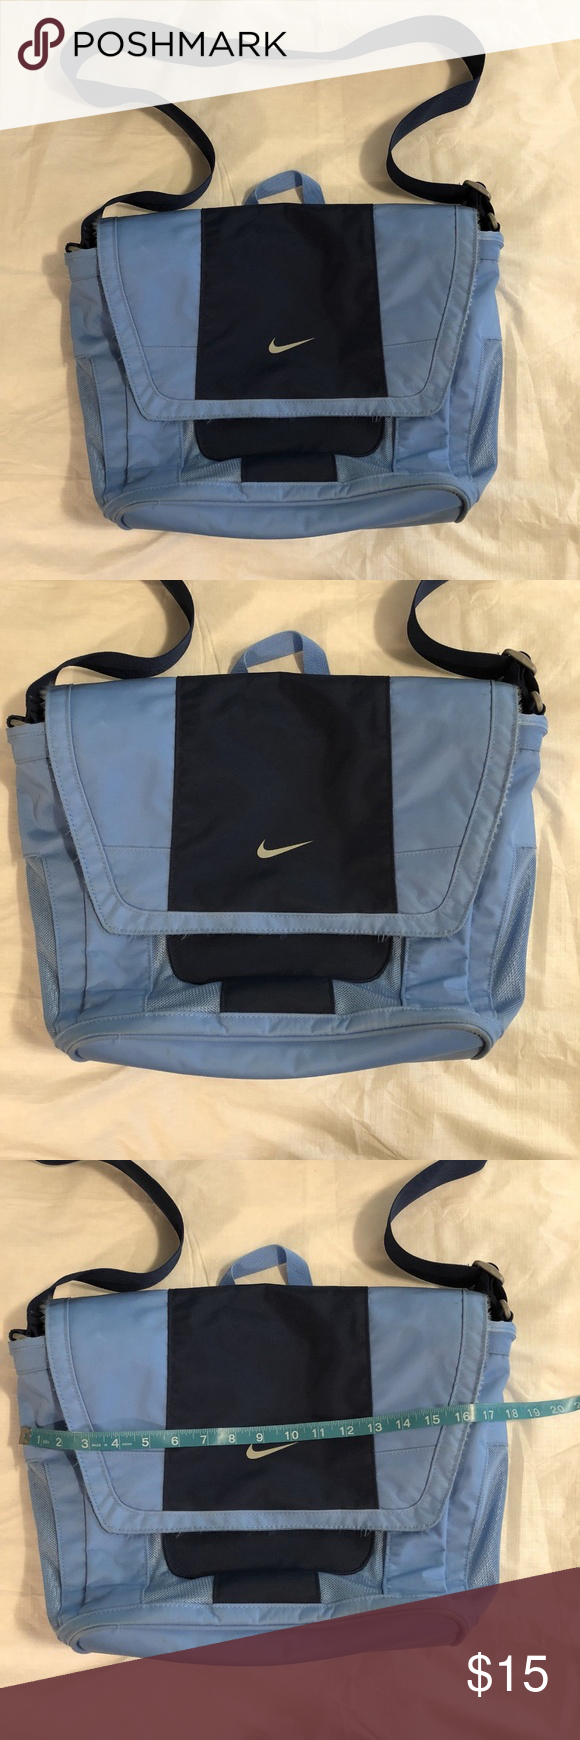 5c9af742466 Nike Laptop Messenger Bag Blue Shoulder Strap ~Nike messenger laptop bag  ~Measures about